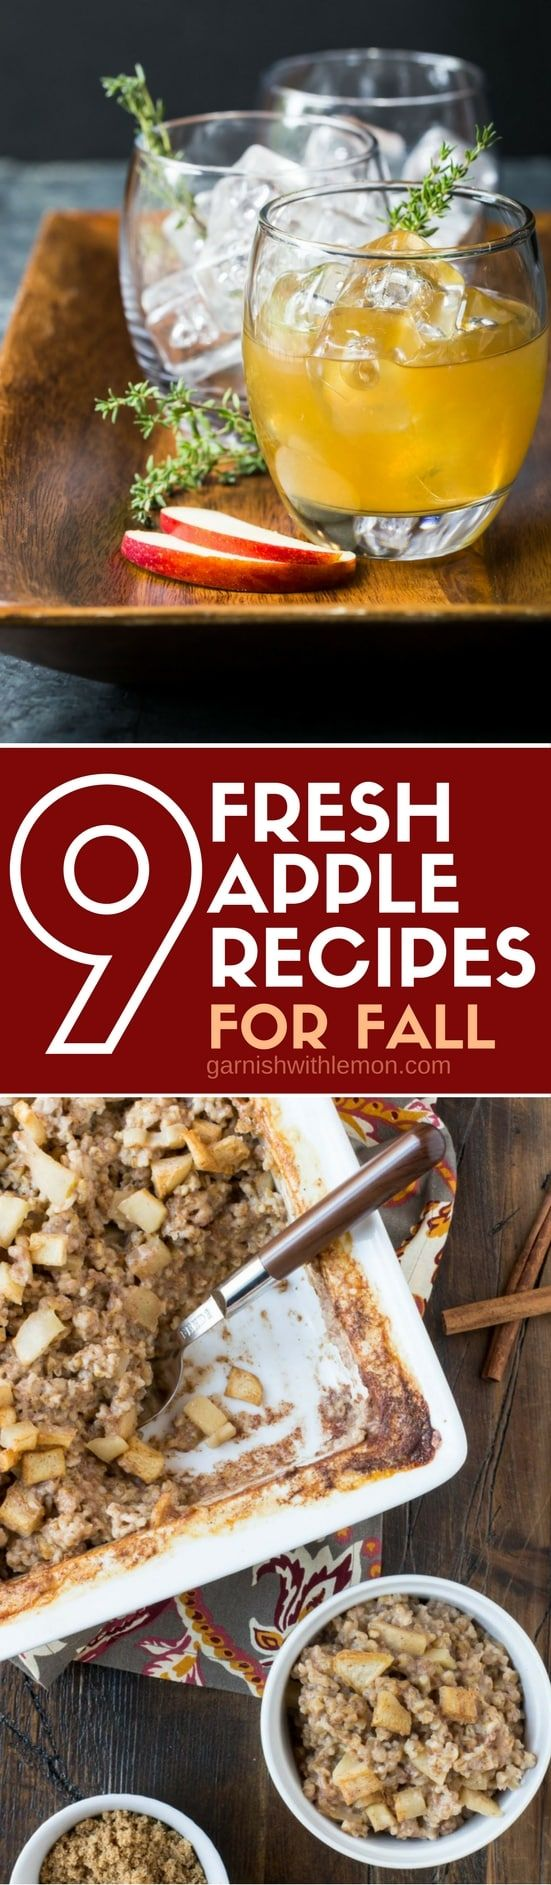 Picture of apple cider cocktail and baked apple oatmeal in collection of 9 Fresh Apple Recipes for Fall